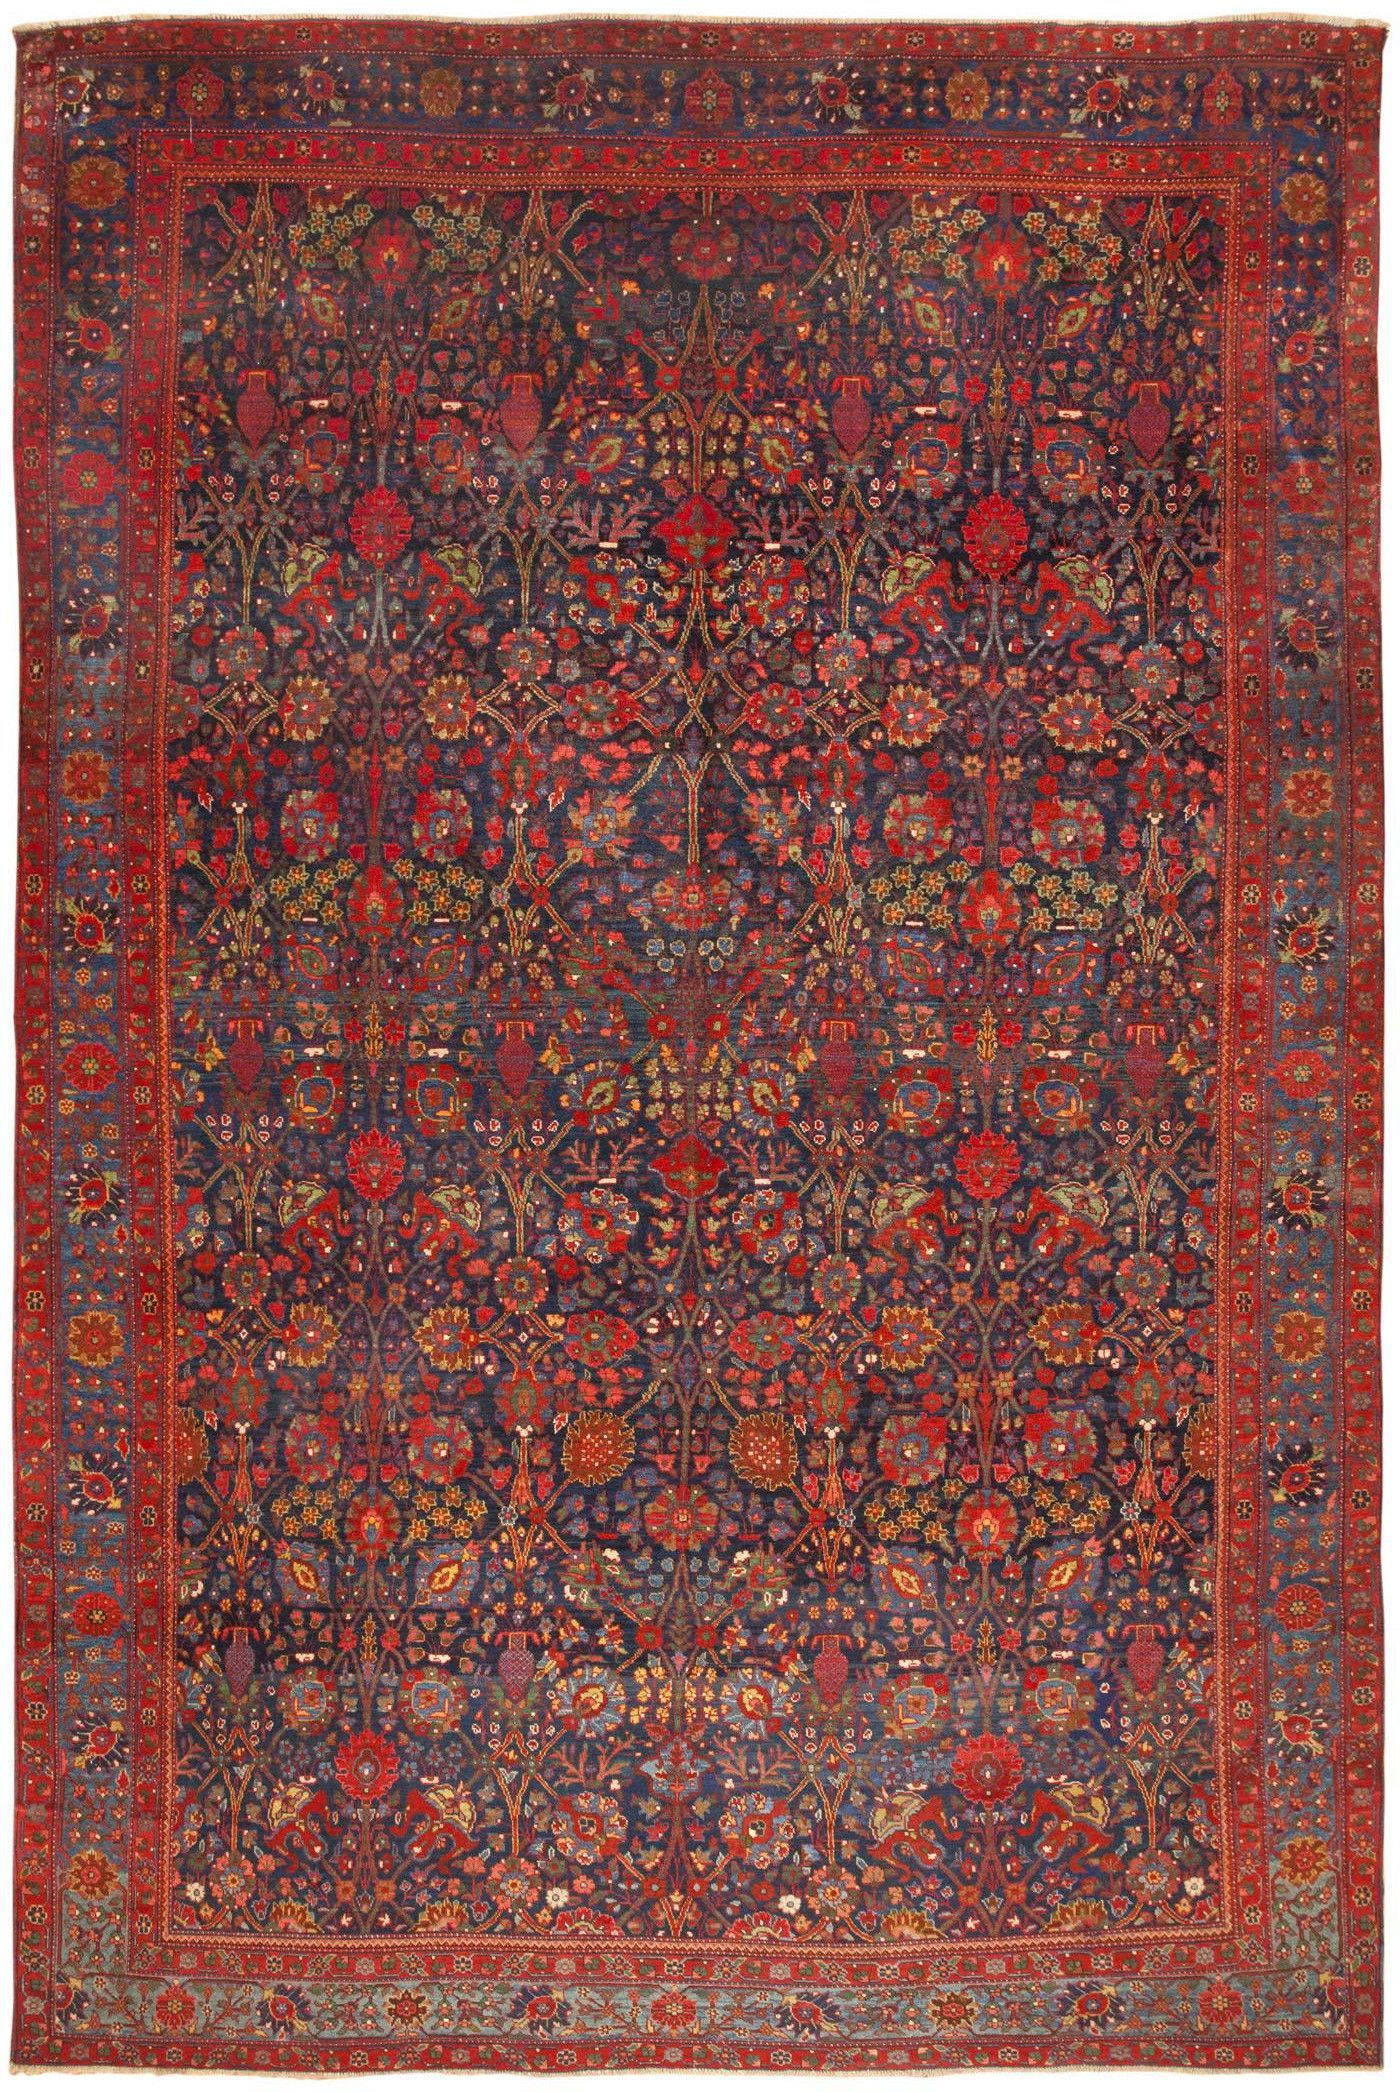 Antique persian kurdish bidjar rug by nazmiyal also